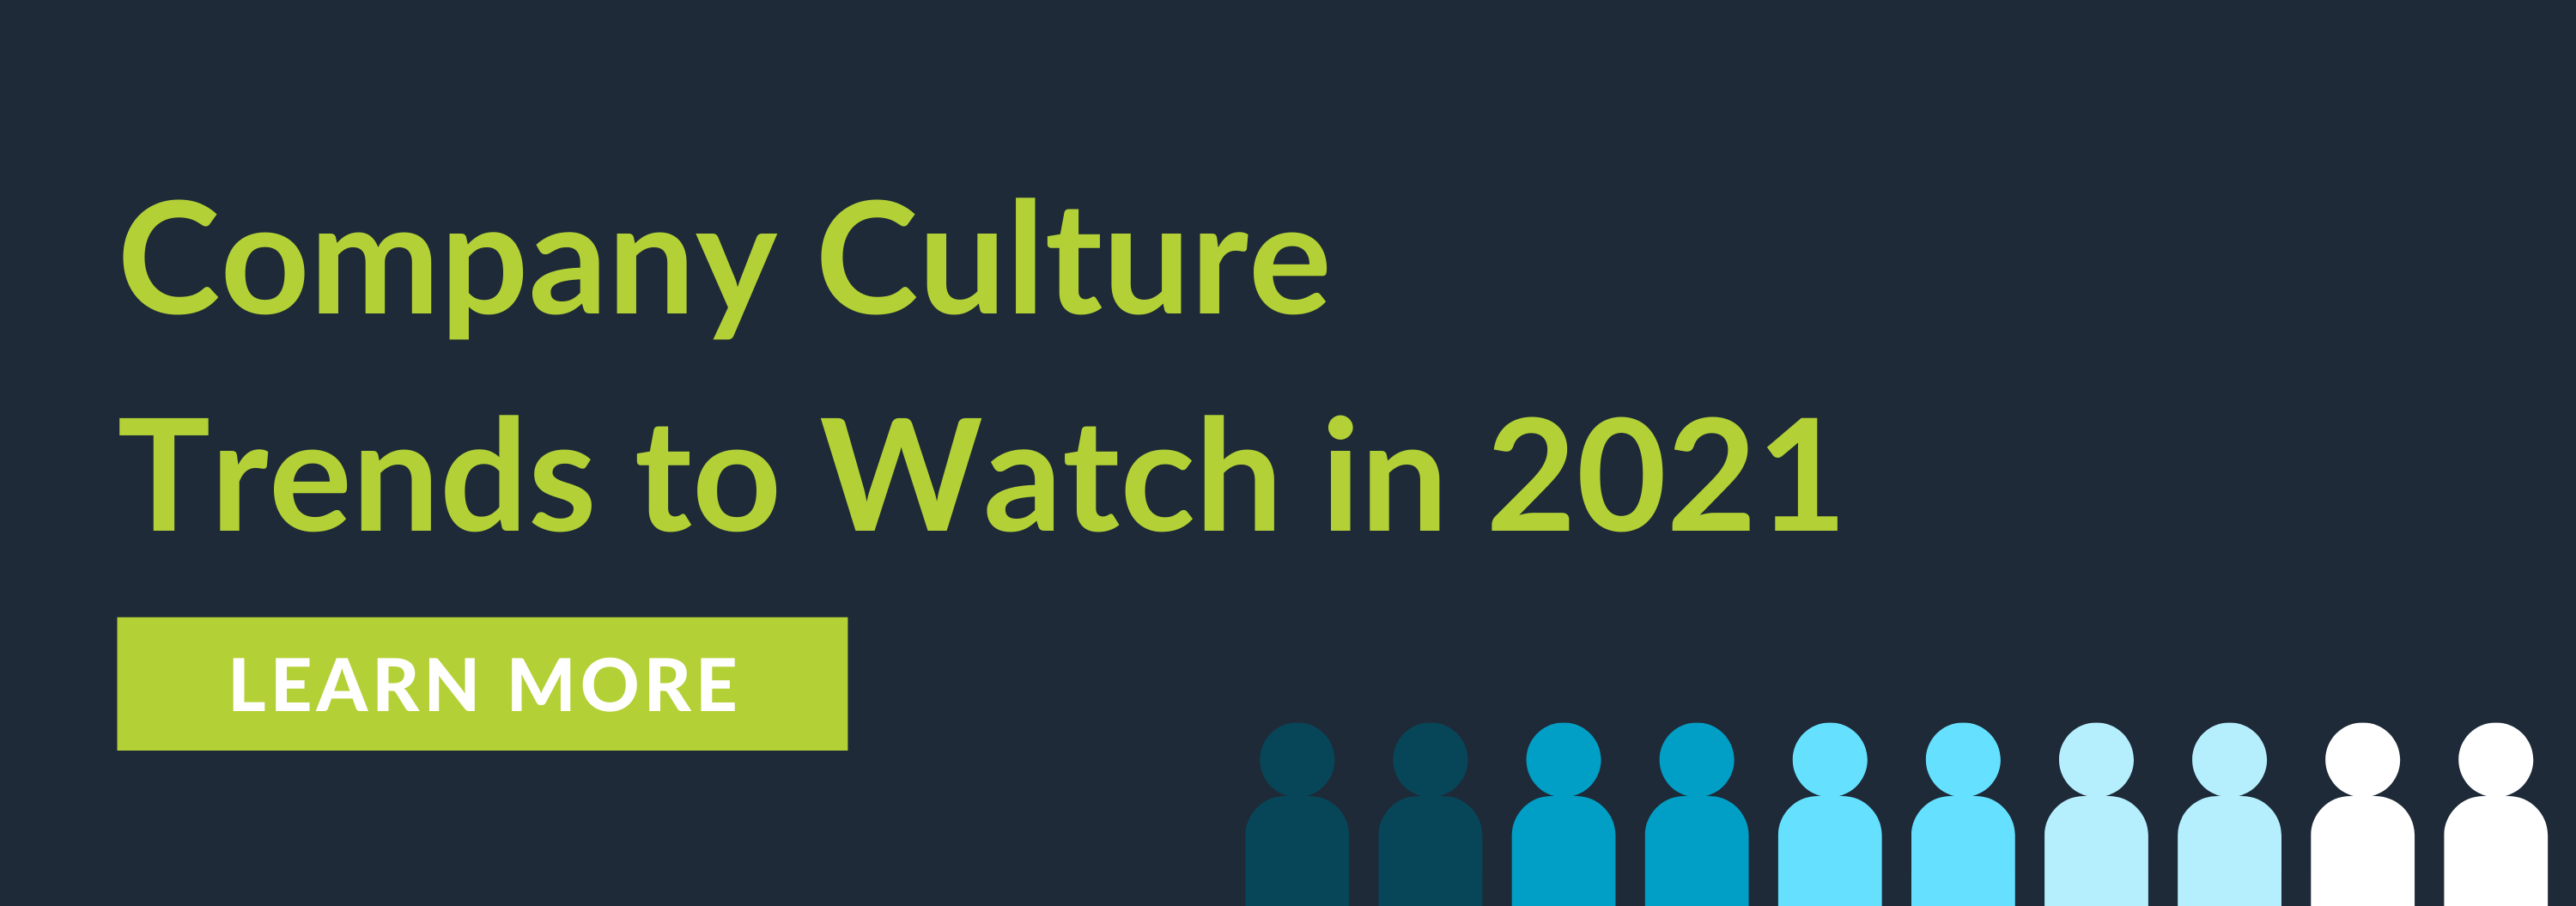 2021 Company Culture Trends Blog CTA